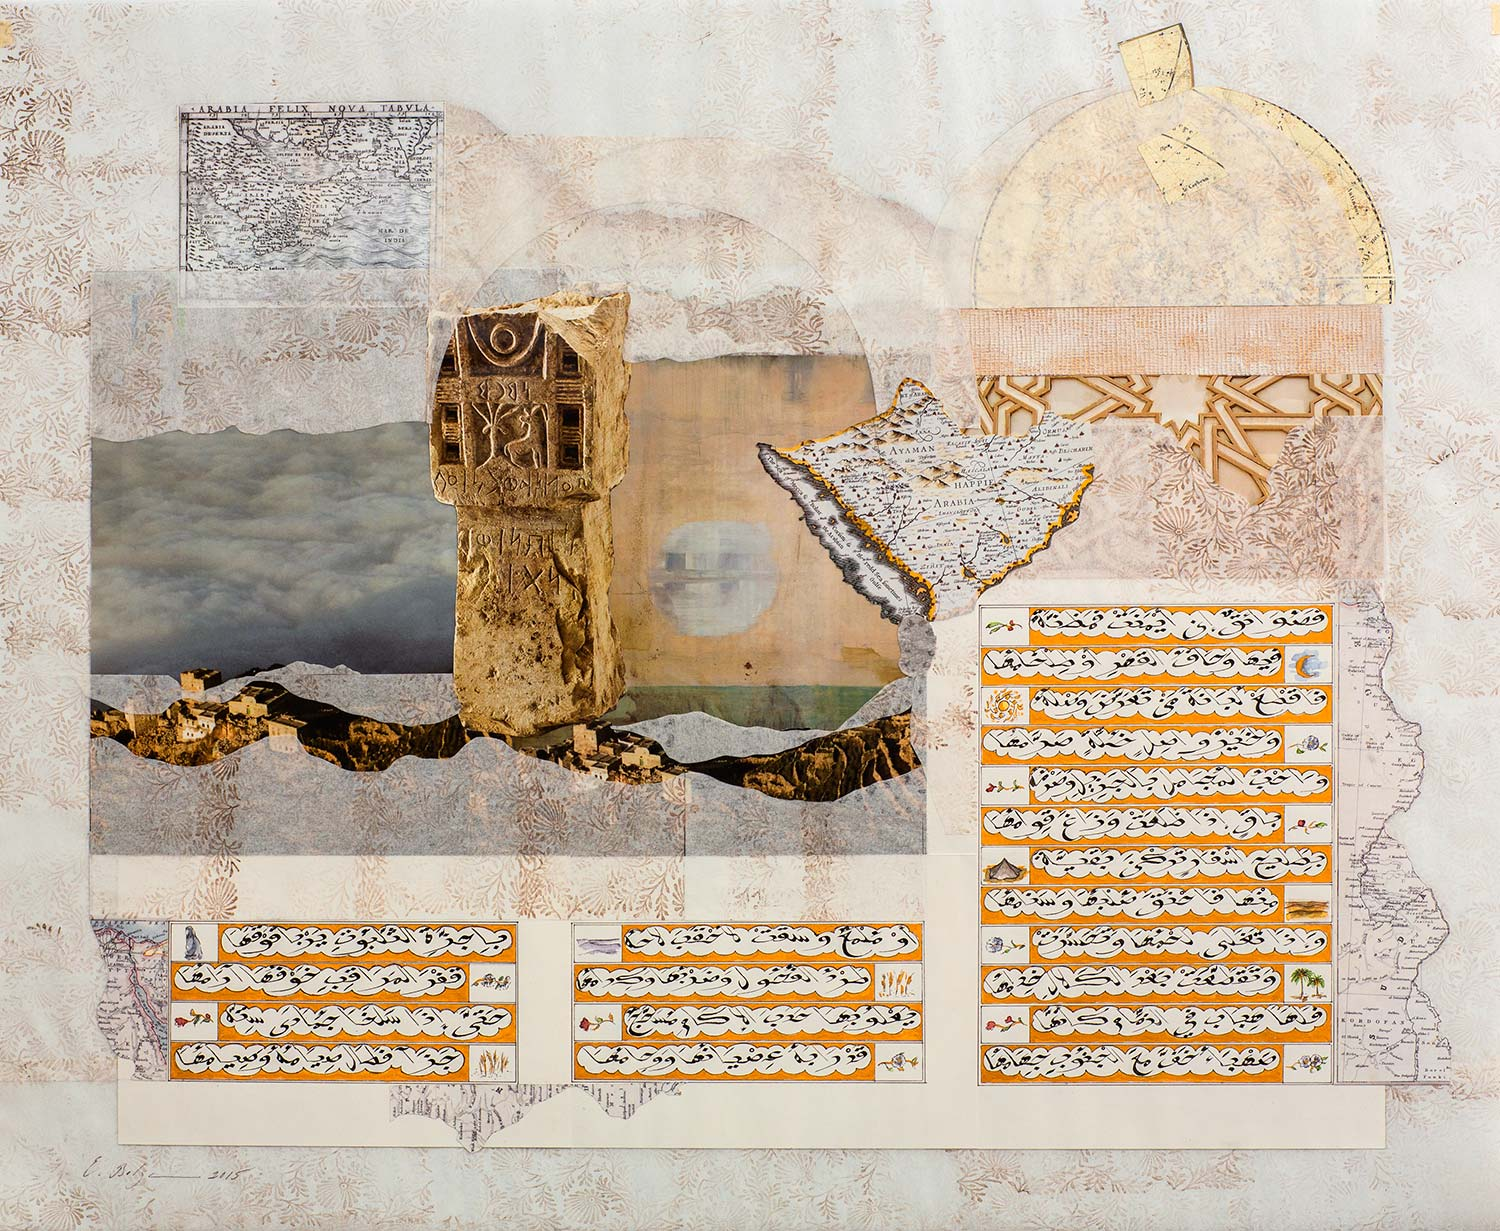 The Golden Ode IV  Paper, Iranian ink, watercolour and gold on hand treated pergaminata paper w 94 x h 81 x 4.8 cm 2015